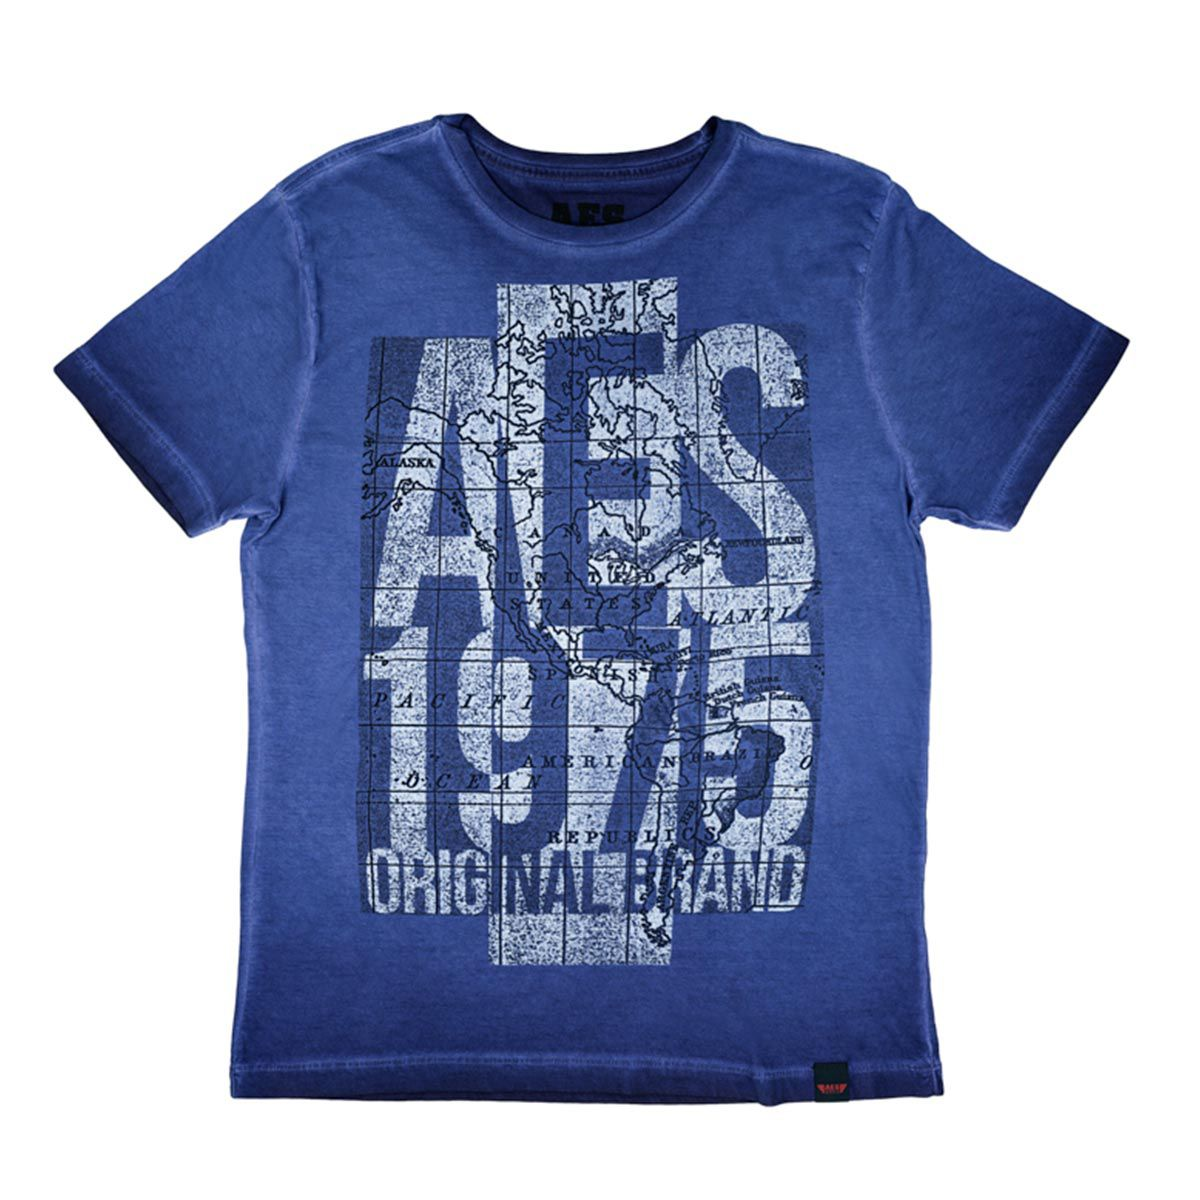 Camiseta AES 1975 Worldwide